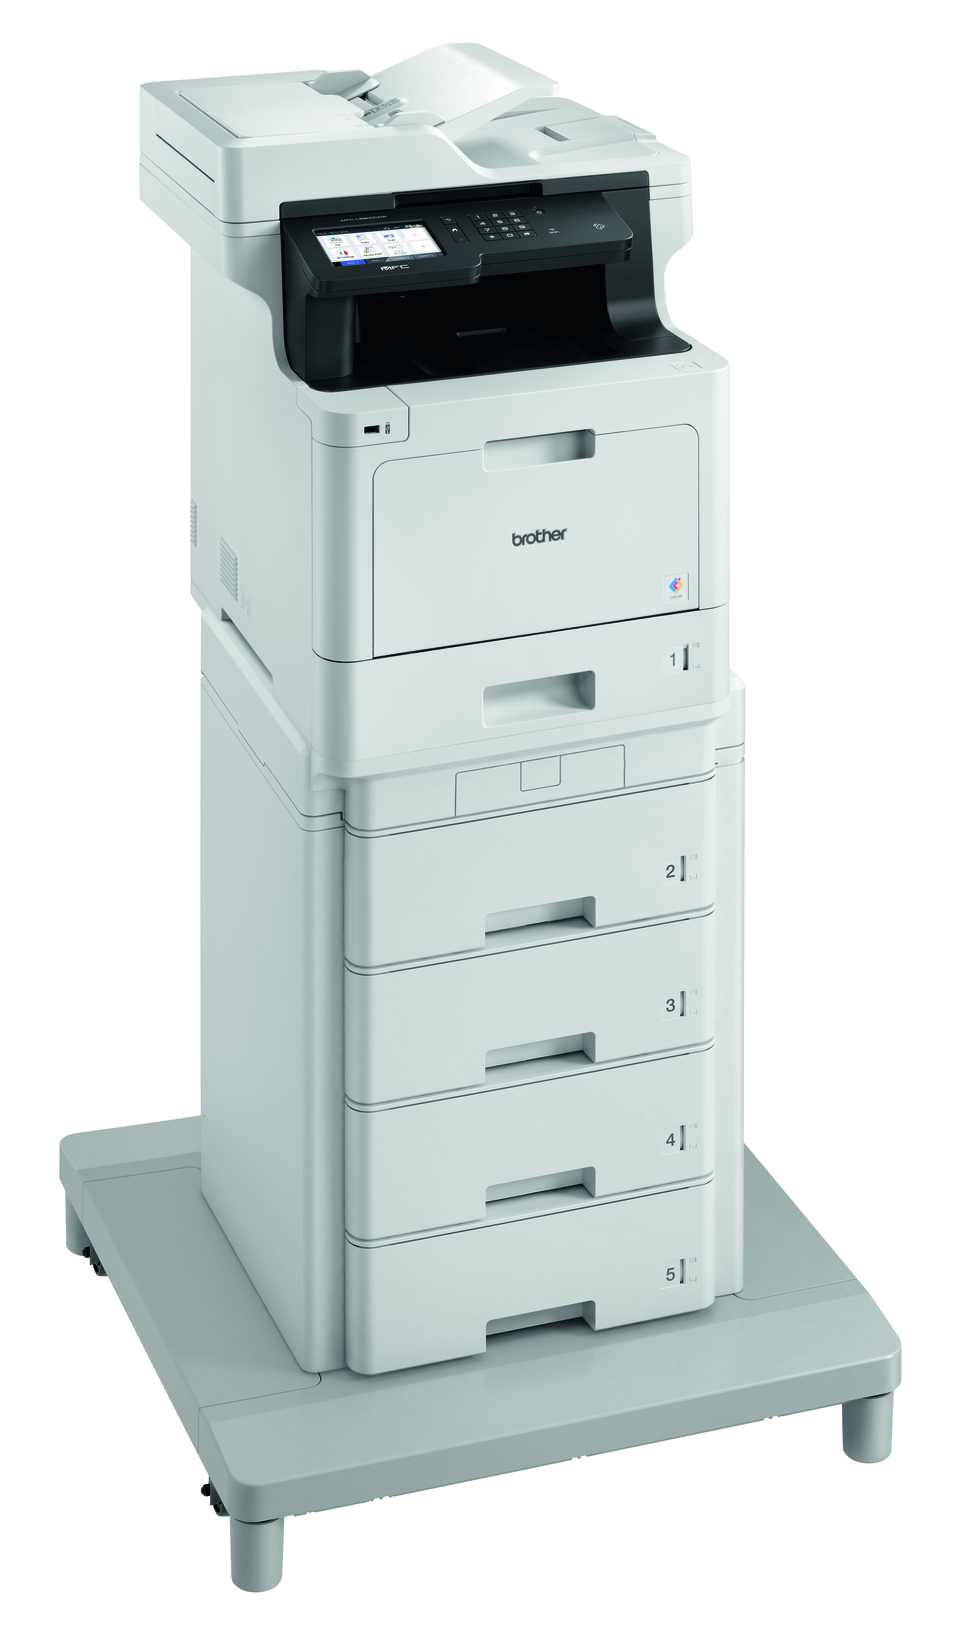 MFC-L8900CDWMT - Professional Colour Laser All-in-one Printer + Tower Tray + Tower Tray Connector 3